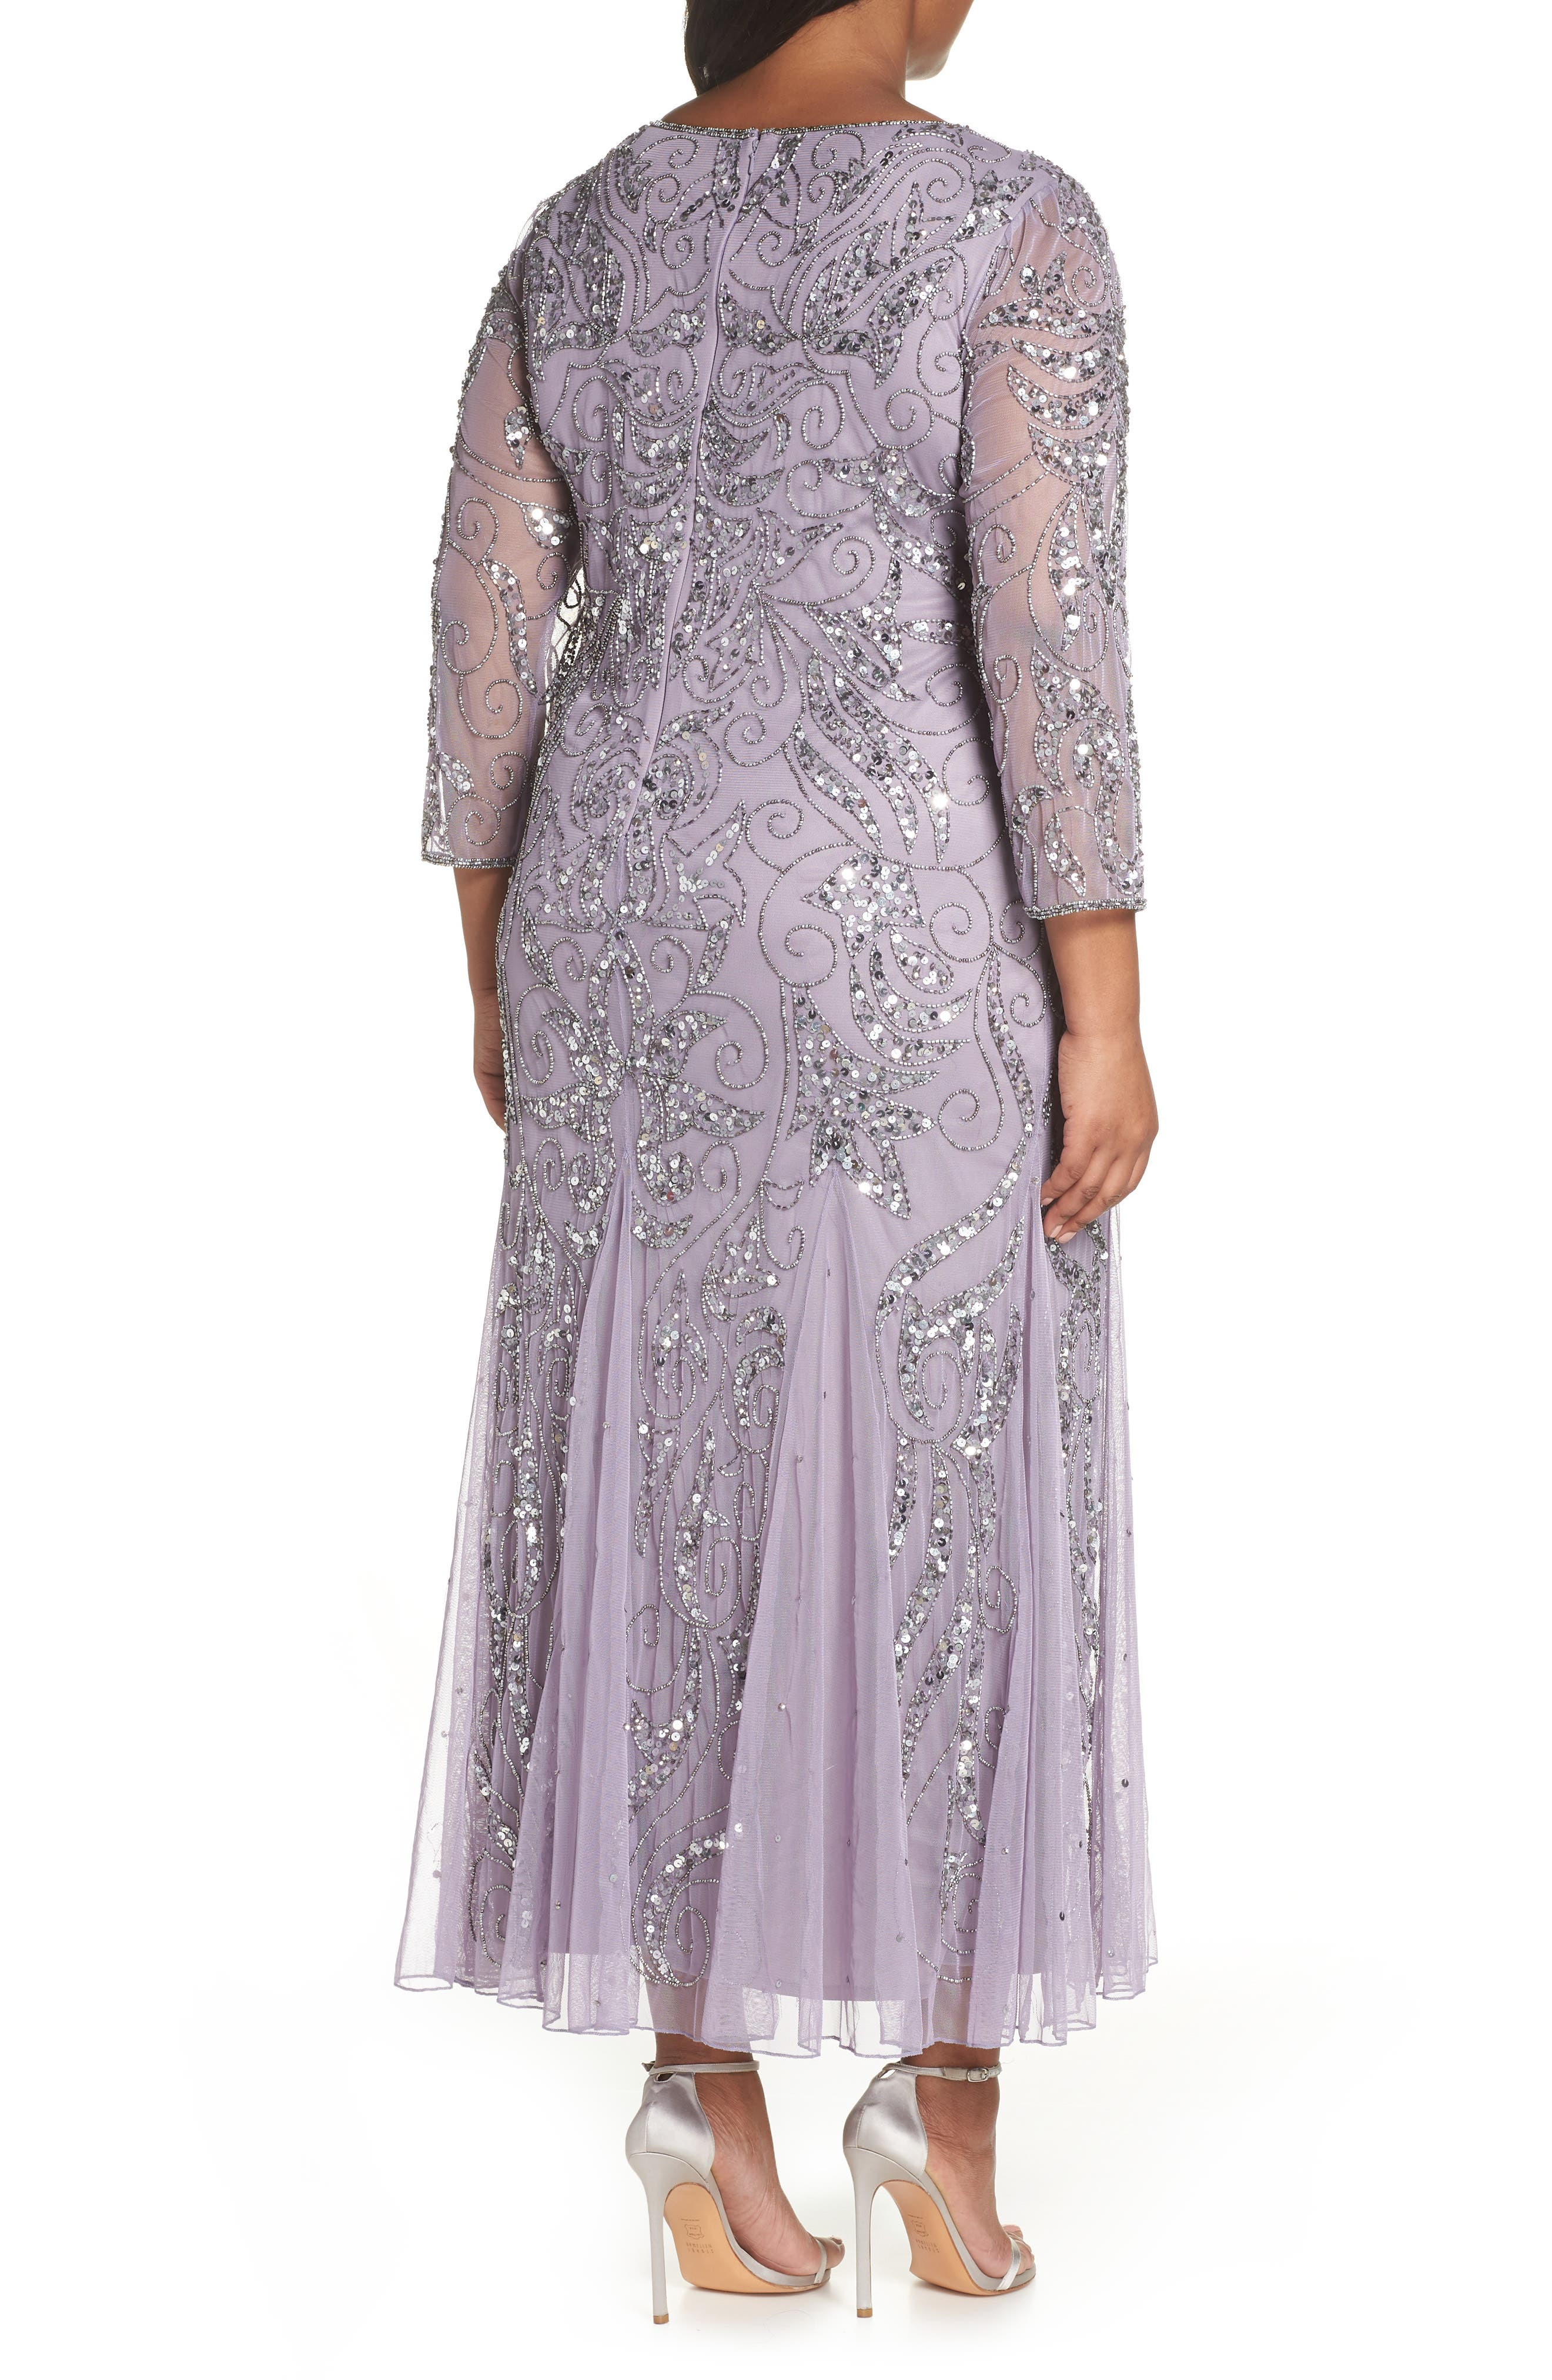 PISARRO NIGHTS, Embellished Three Quarter Sleeve Gown, Alternate thumbnail 2, color, NEW LAVENDER